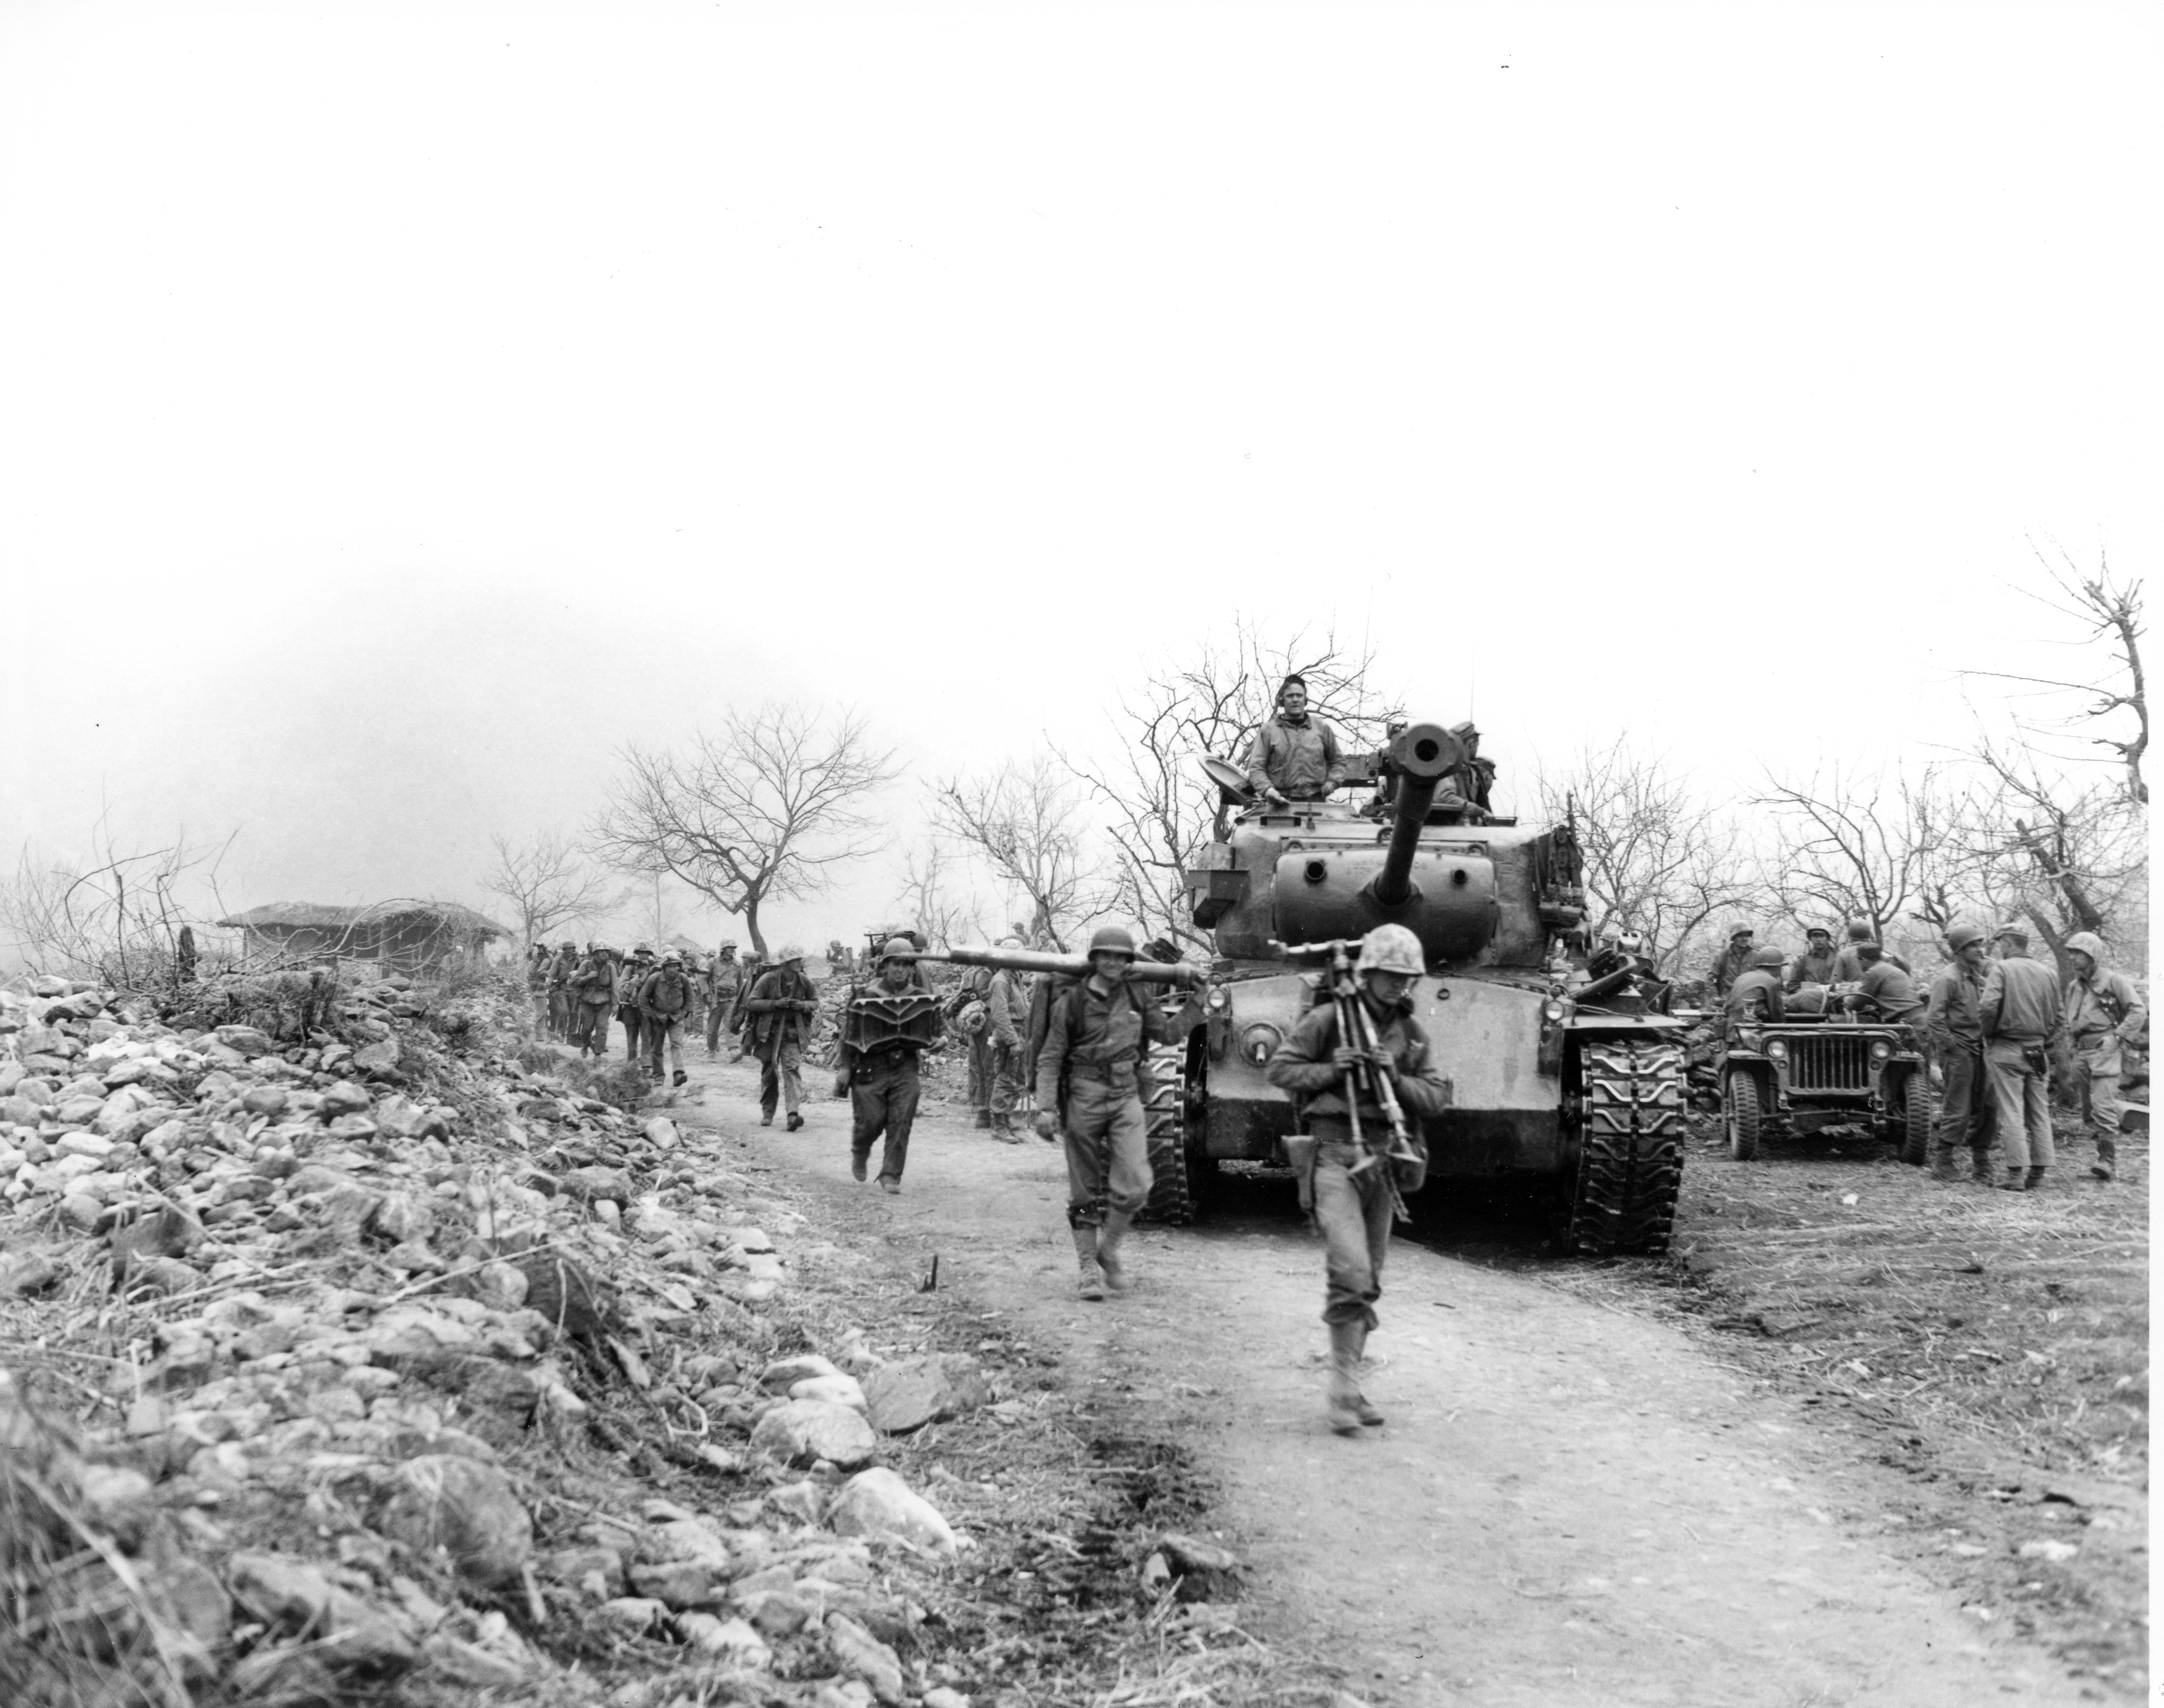 7th Marines in Korea, April 1951